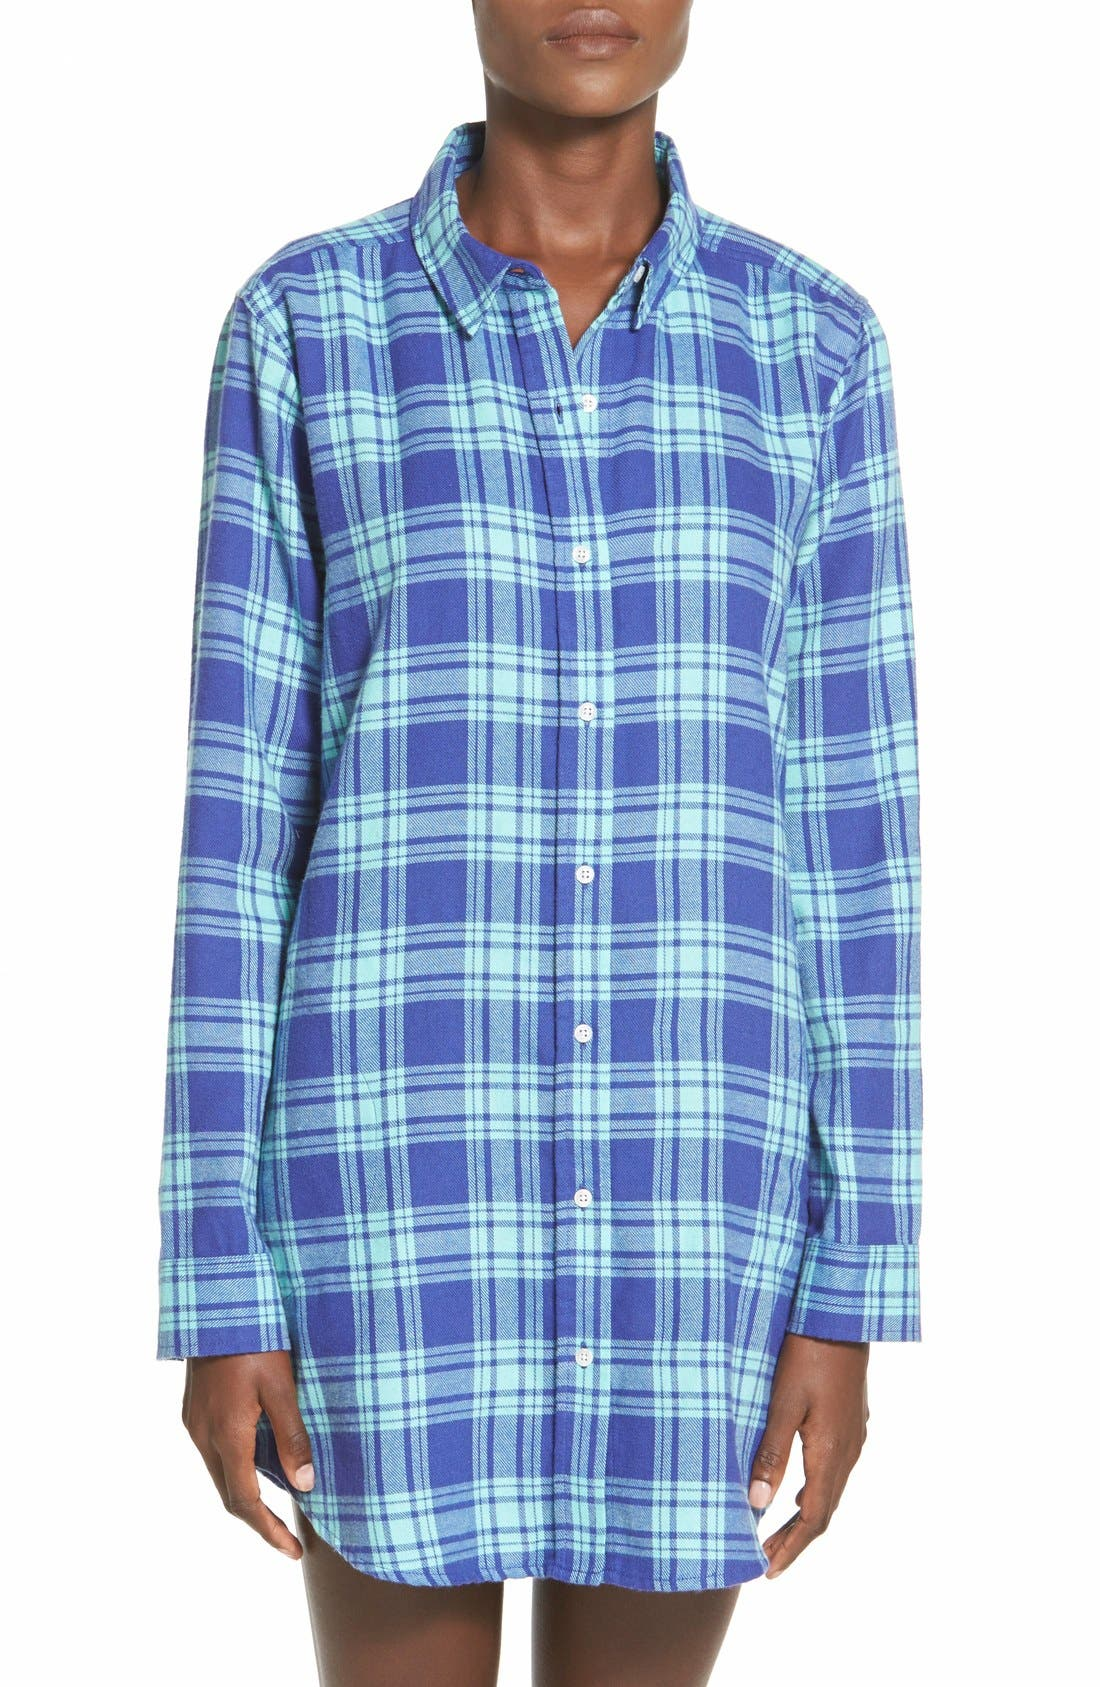 BP. UNDERCOVER, Flannel Night Shirt, Main thumbnail 1, color, 440